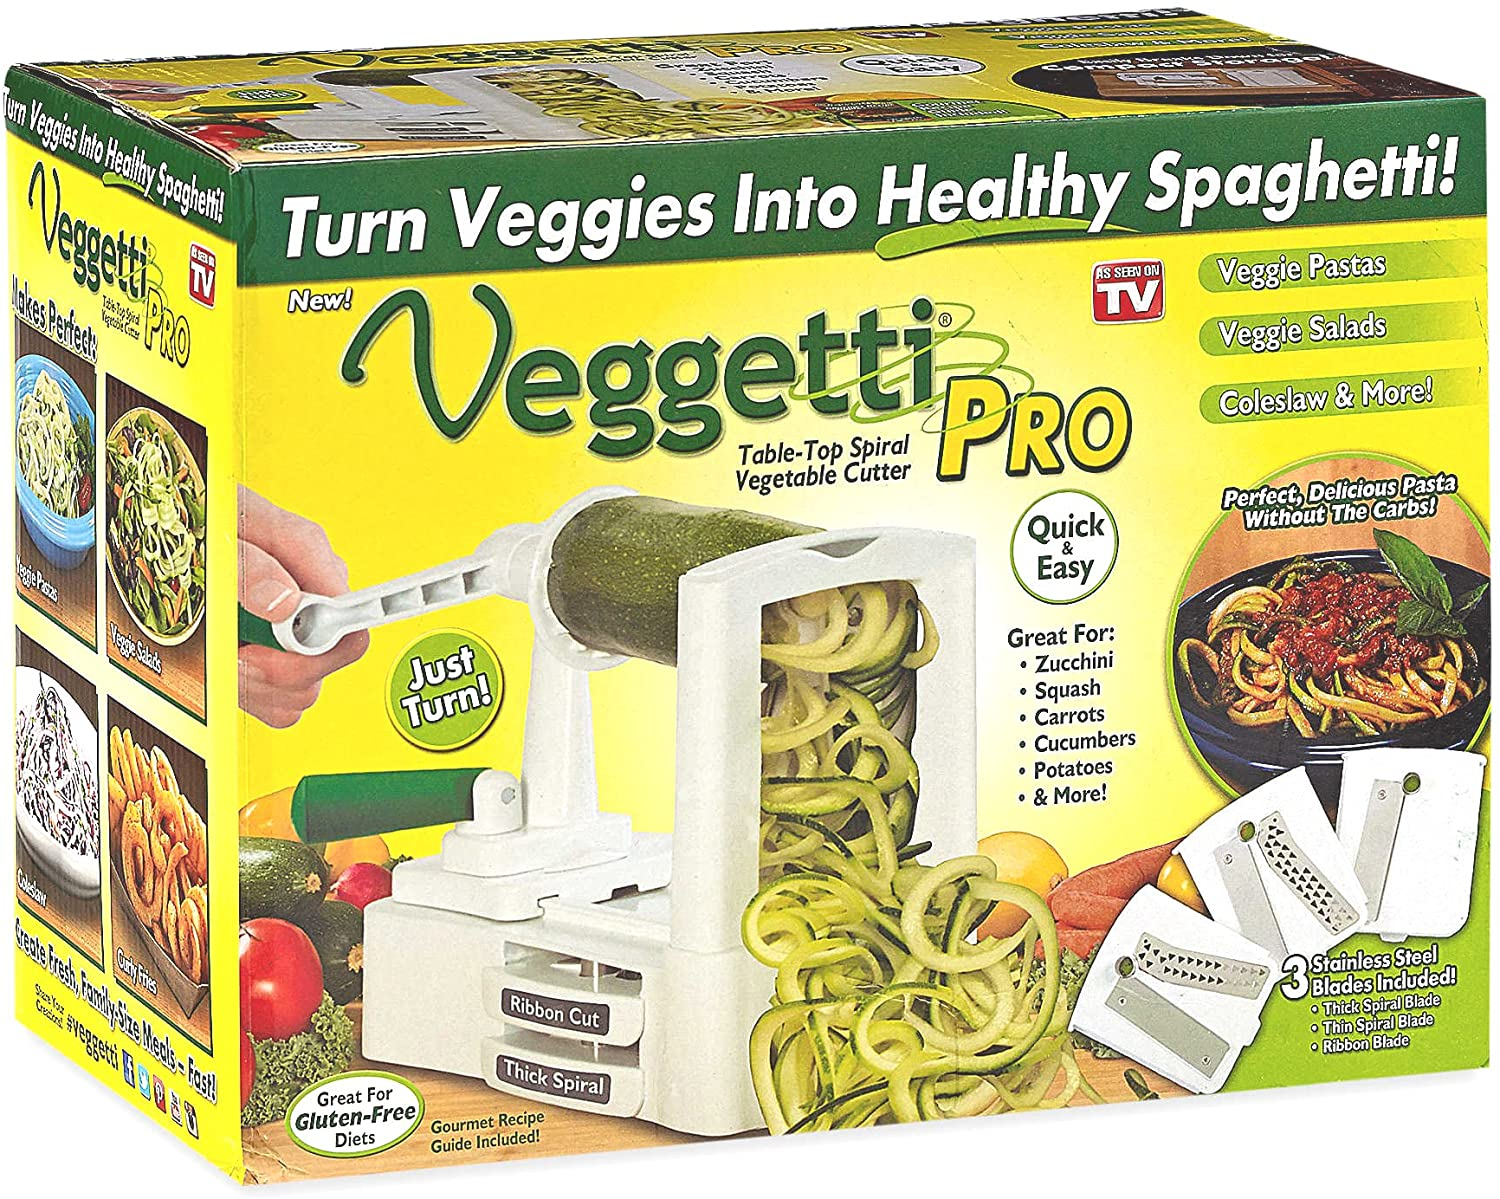 shopify-As Seen On TV Veggetti Pro Tabletop Spiralizer-1